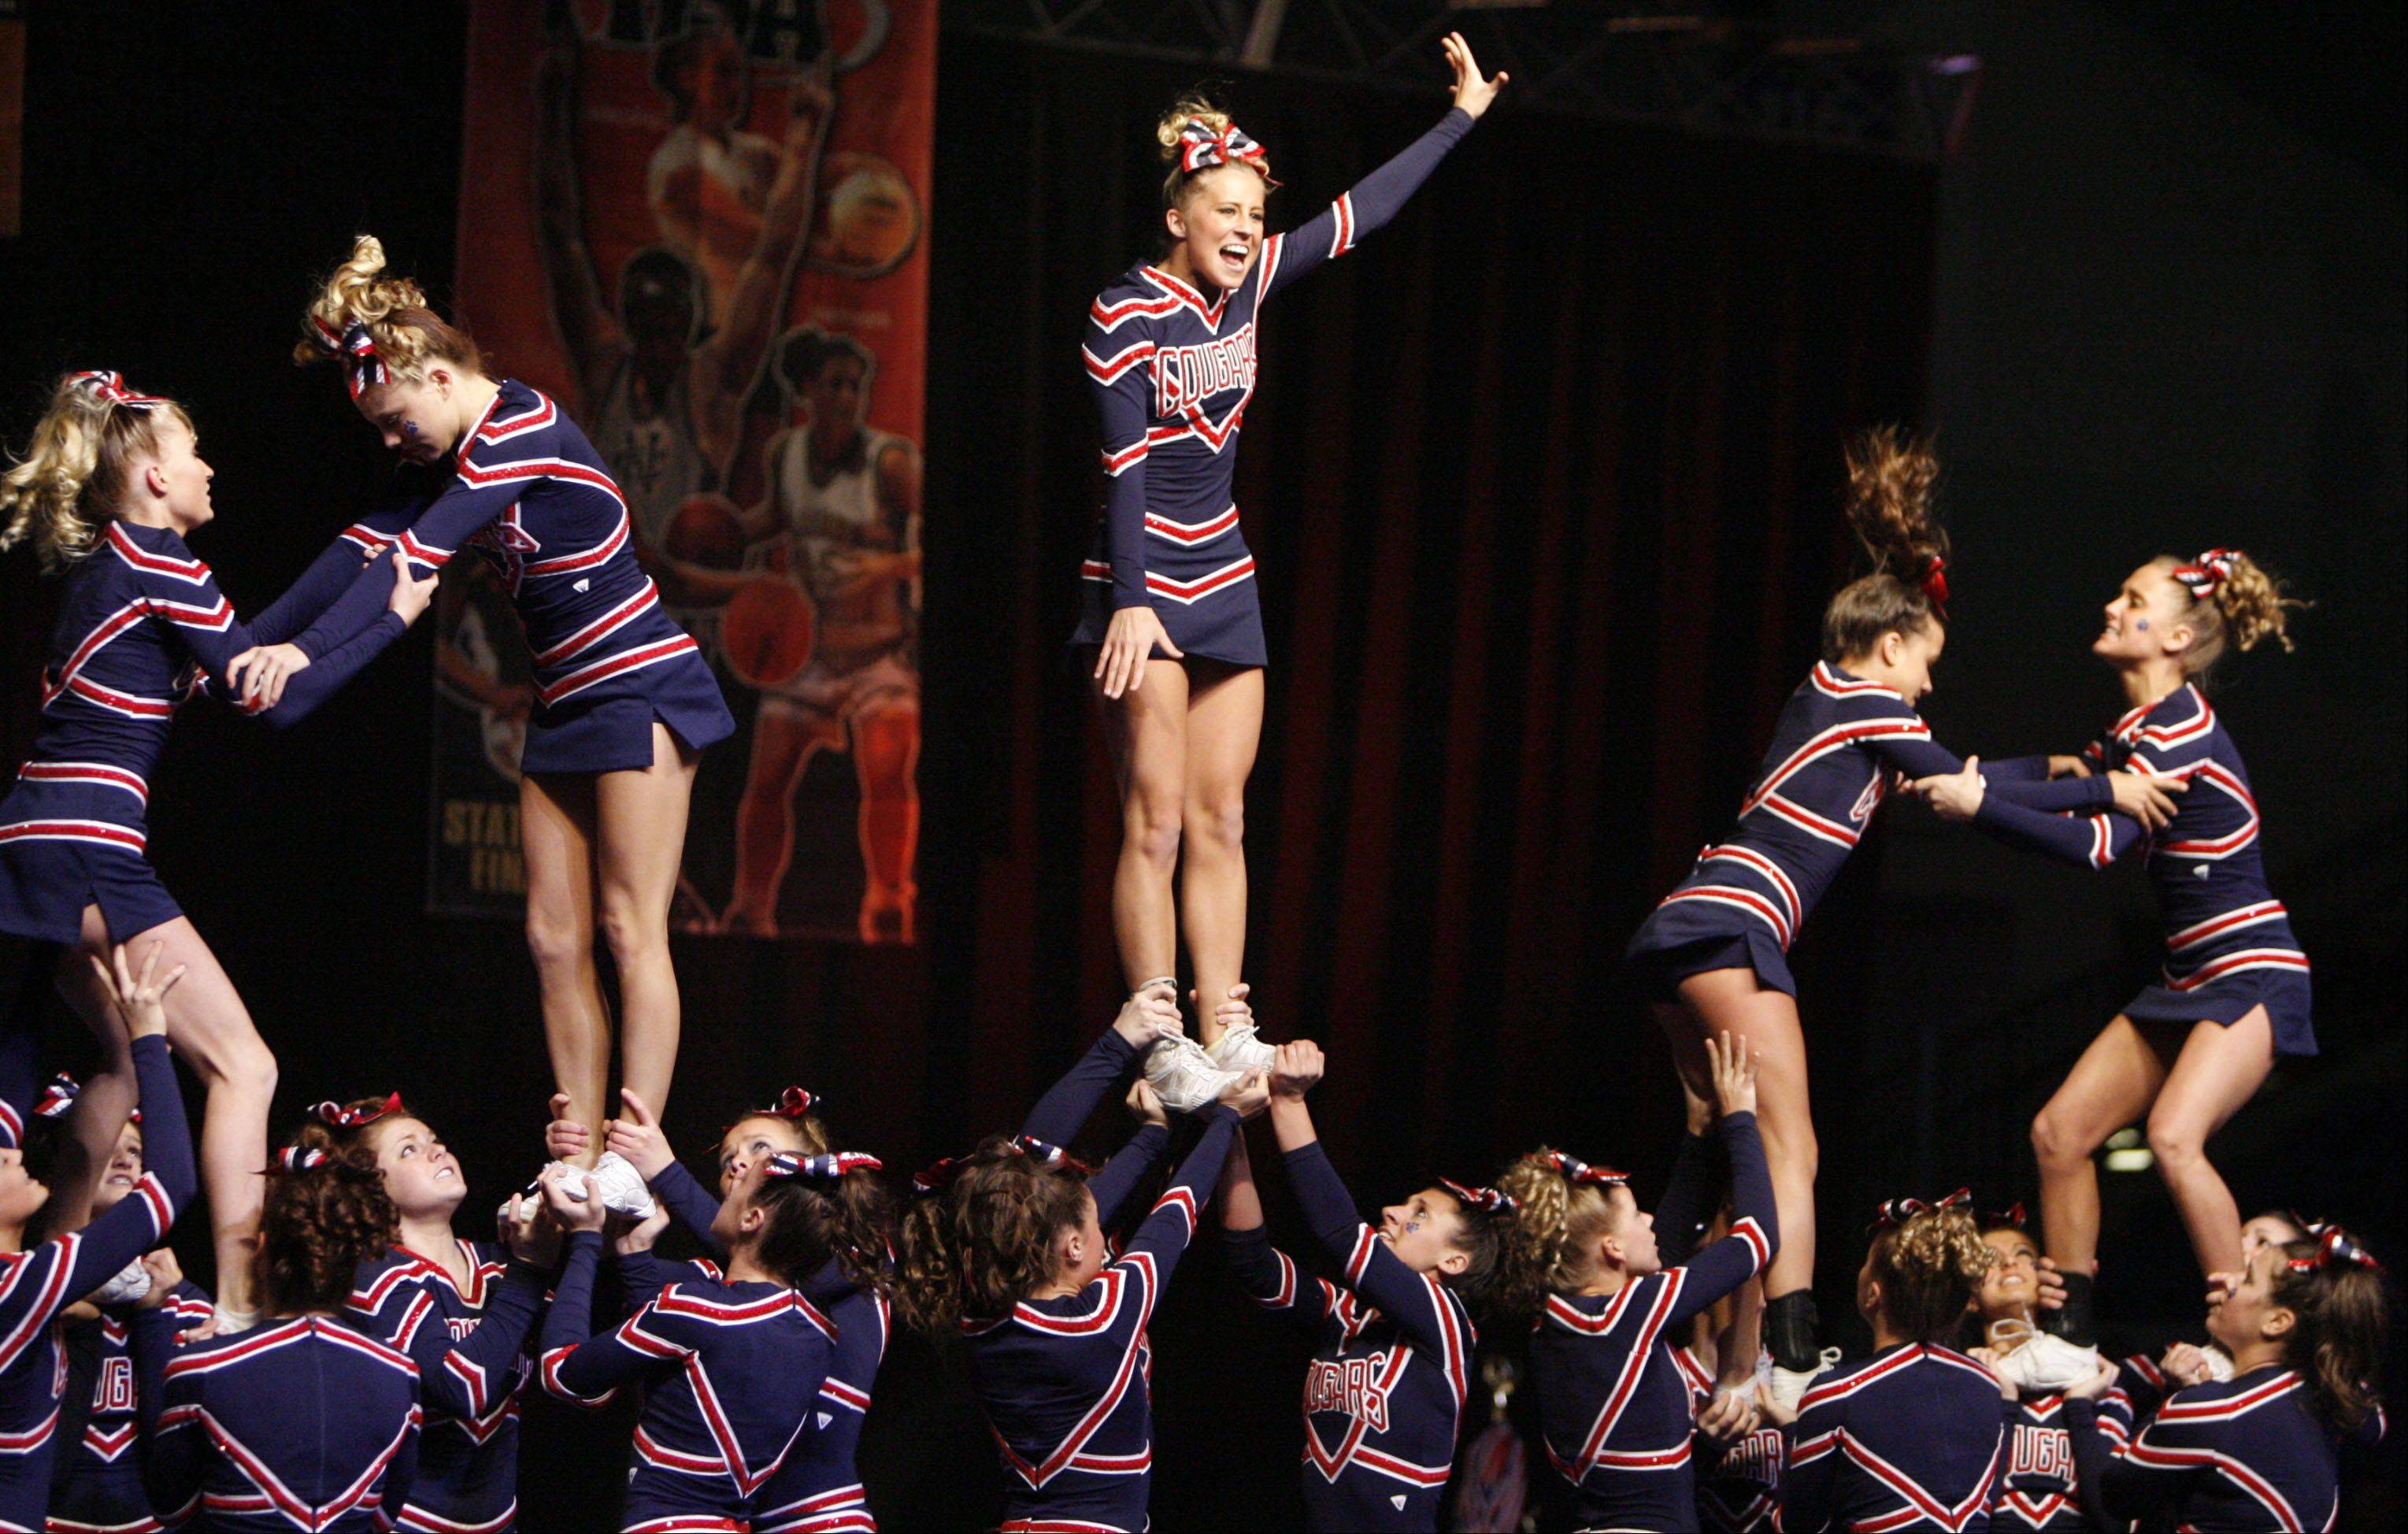 The Winter Meltdown IHSA Cheerleading & Dance Competition comes to the Sears Centre Arena in Hoffman Estates on Saturday, Jan. 4. The team from Conant High School performs at a previous edition of the IHSA State Competitive Cheerleading Finals.